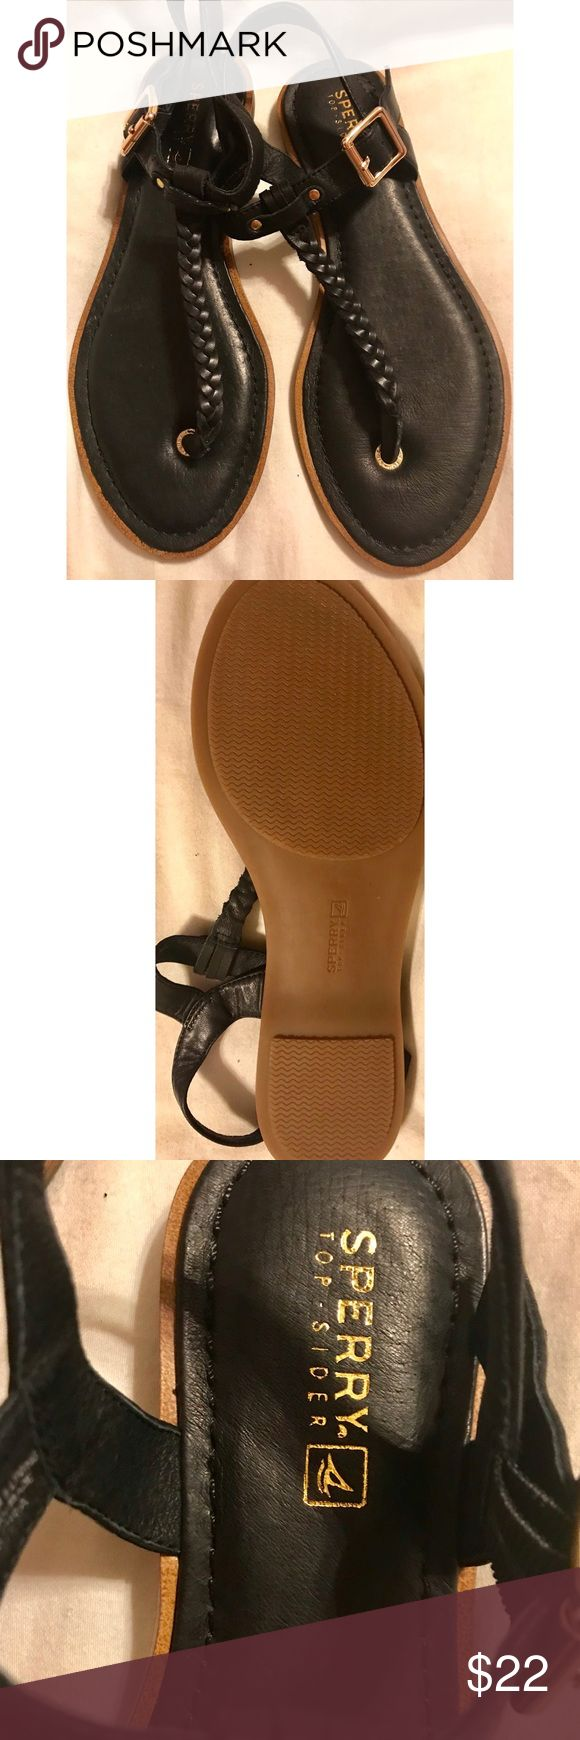 Black Leather Sperry sandals, worn once! Black leather Sperry sandals with gold buckle, worn once, absolutely perfect shape! Size 7 Sperry Shoes Sandals